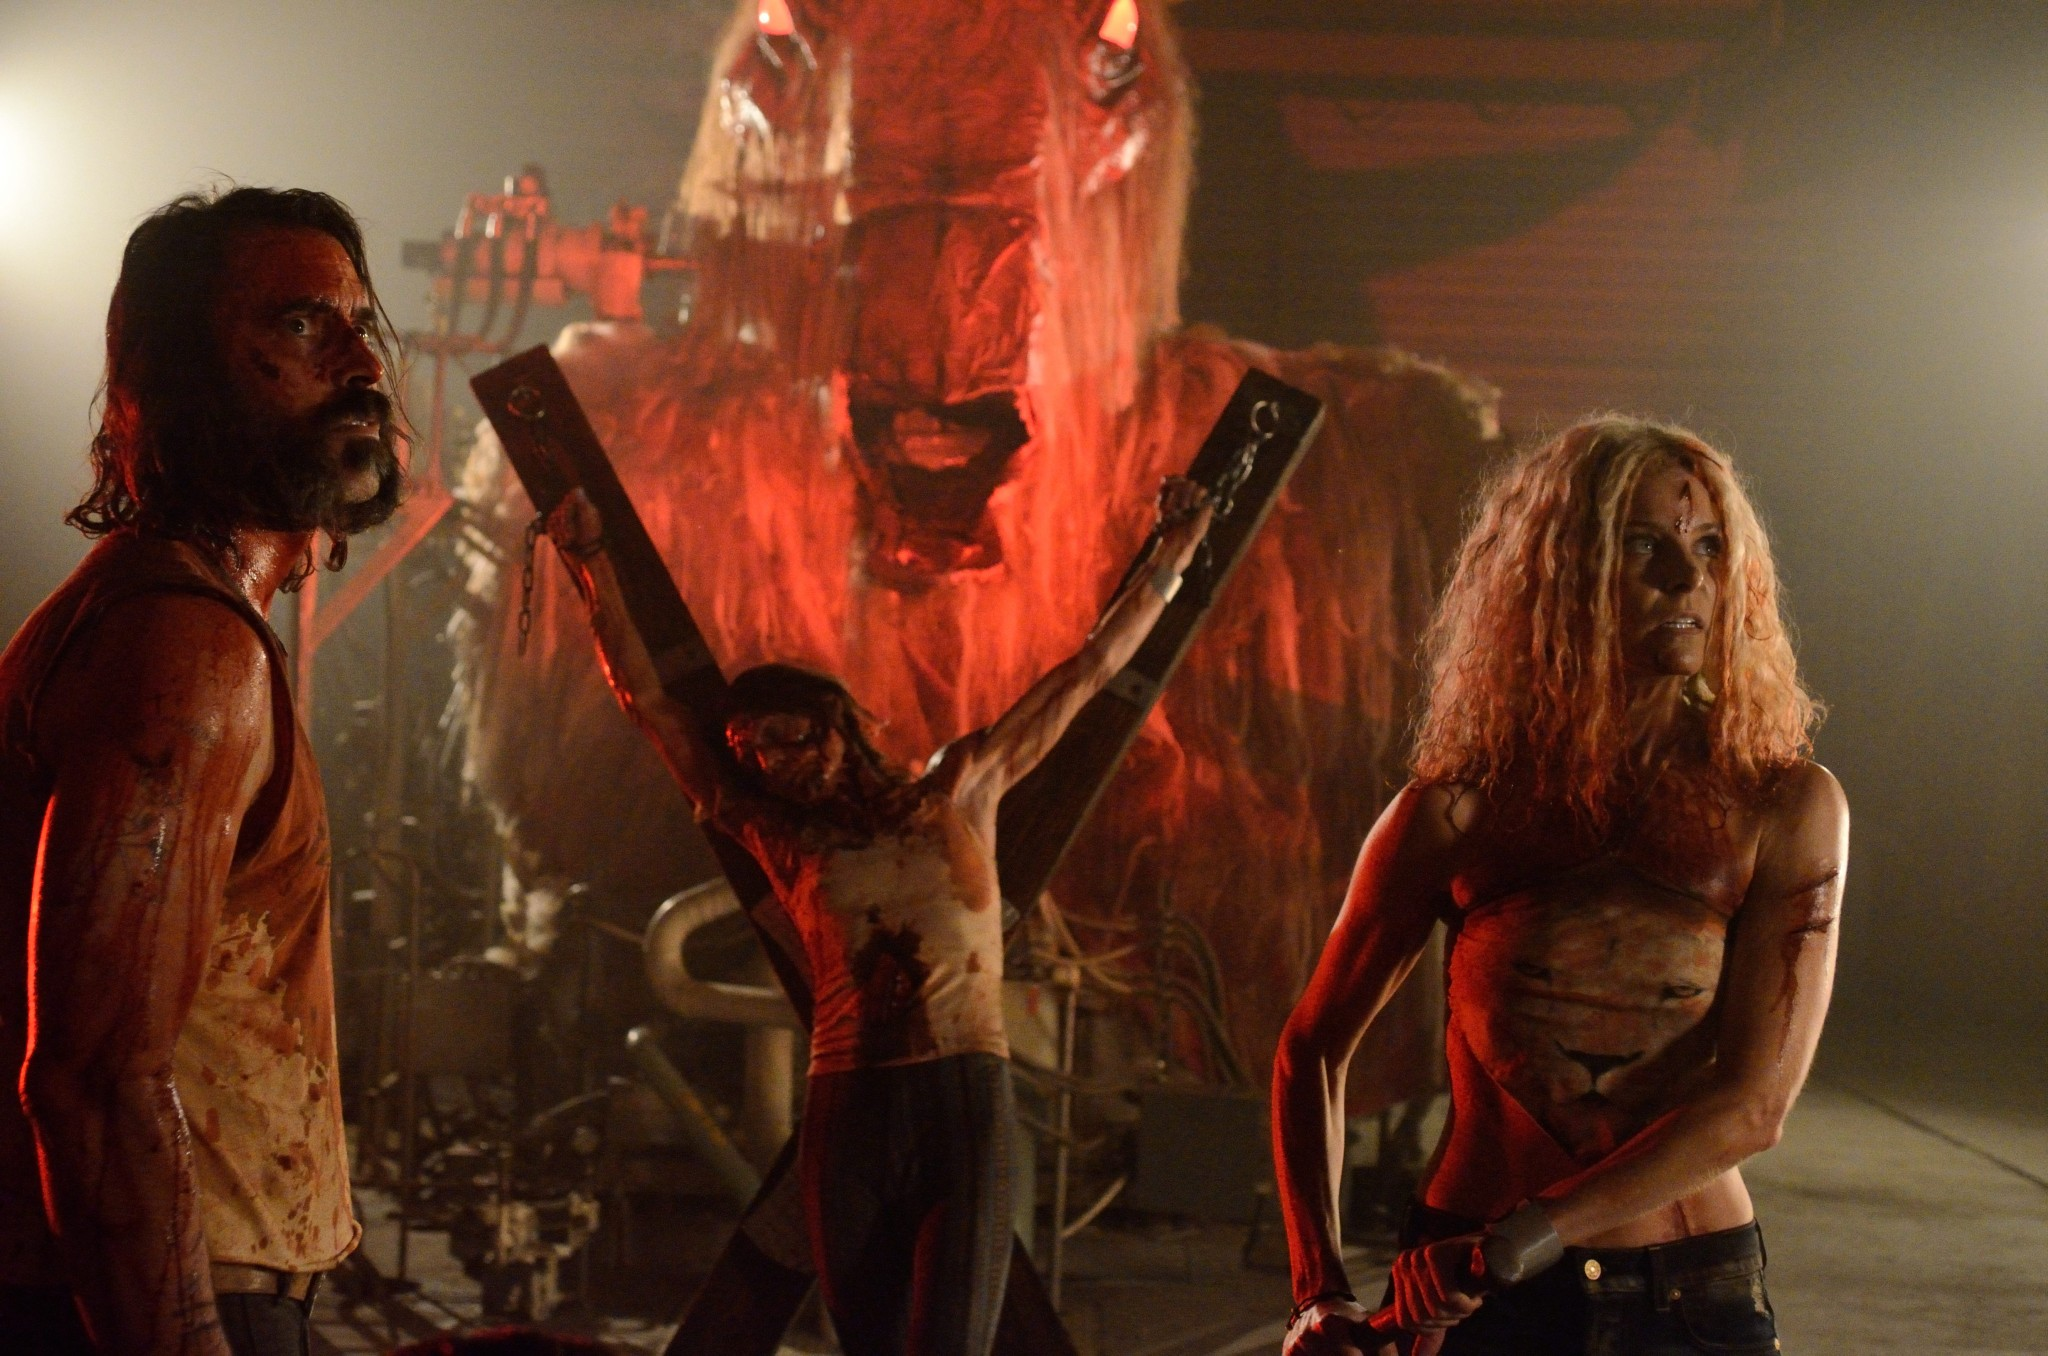 Jeff Daniel Phillips and Sheri Moon Zombie navigate the death maze in 31 (2016)